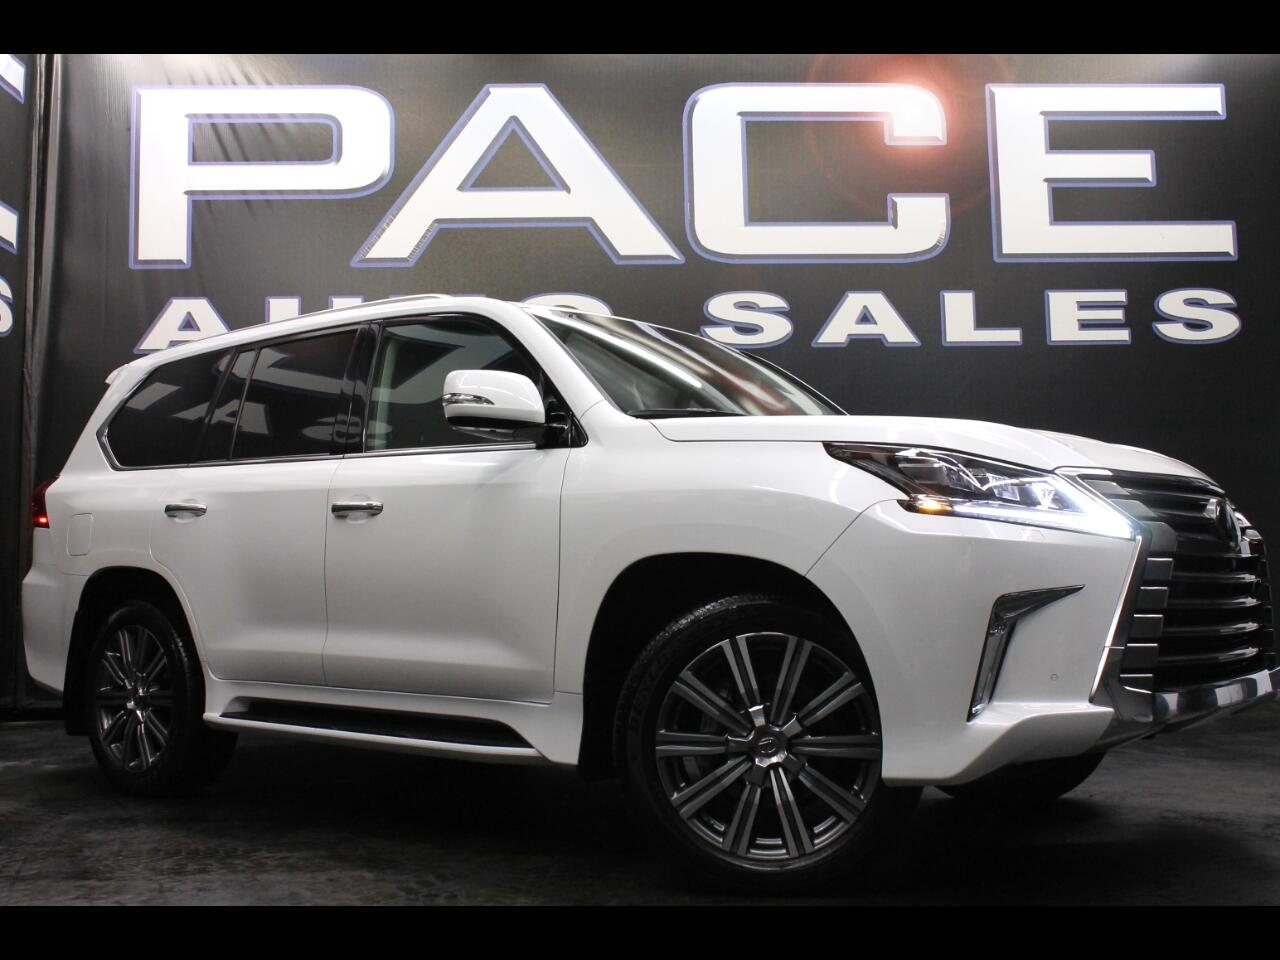 Used Cars For Sale Hattiesburg Ms 39402 Pace Auto Sales